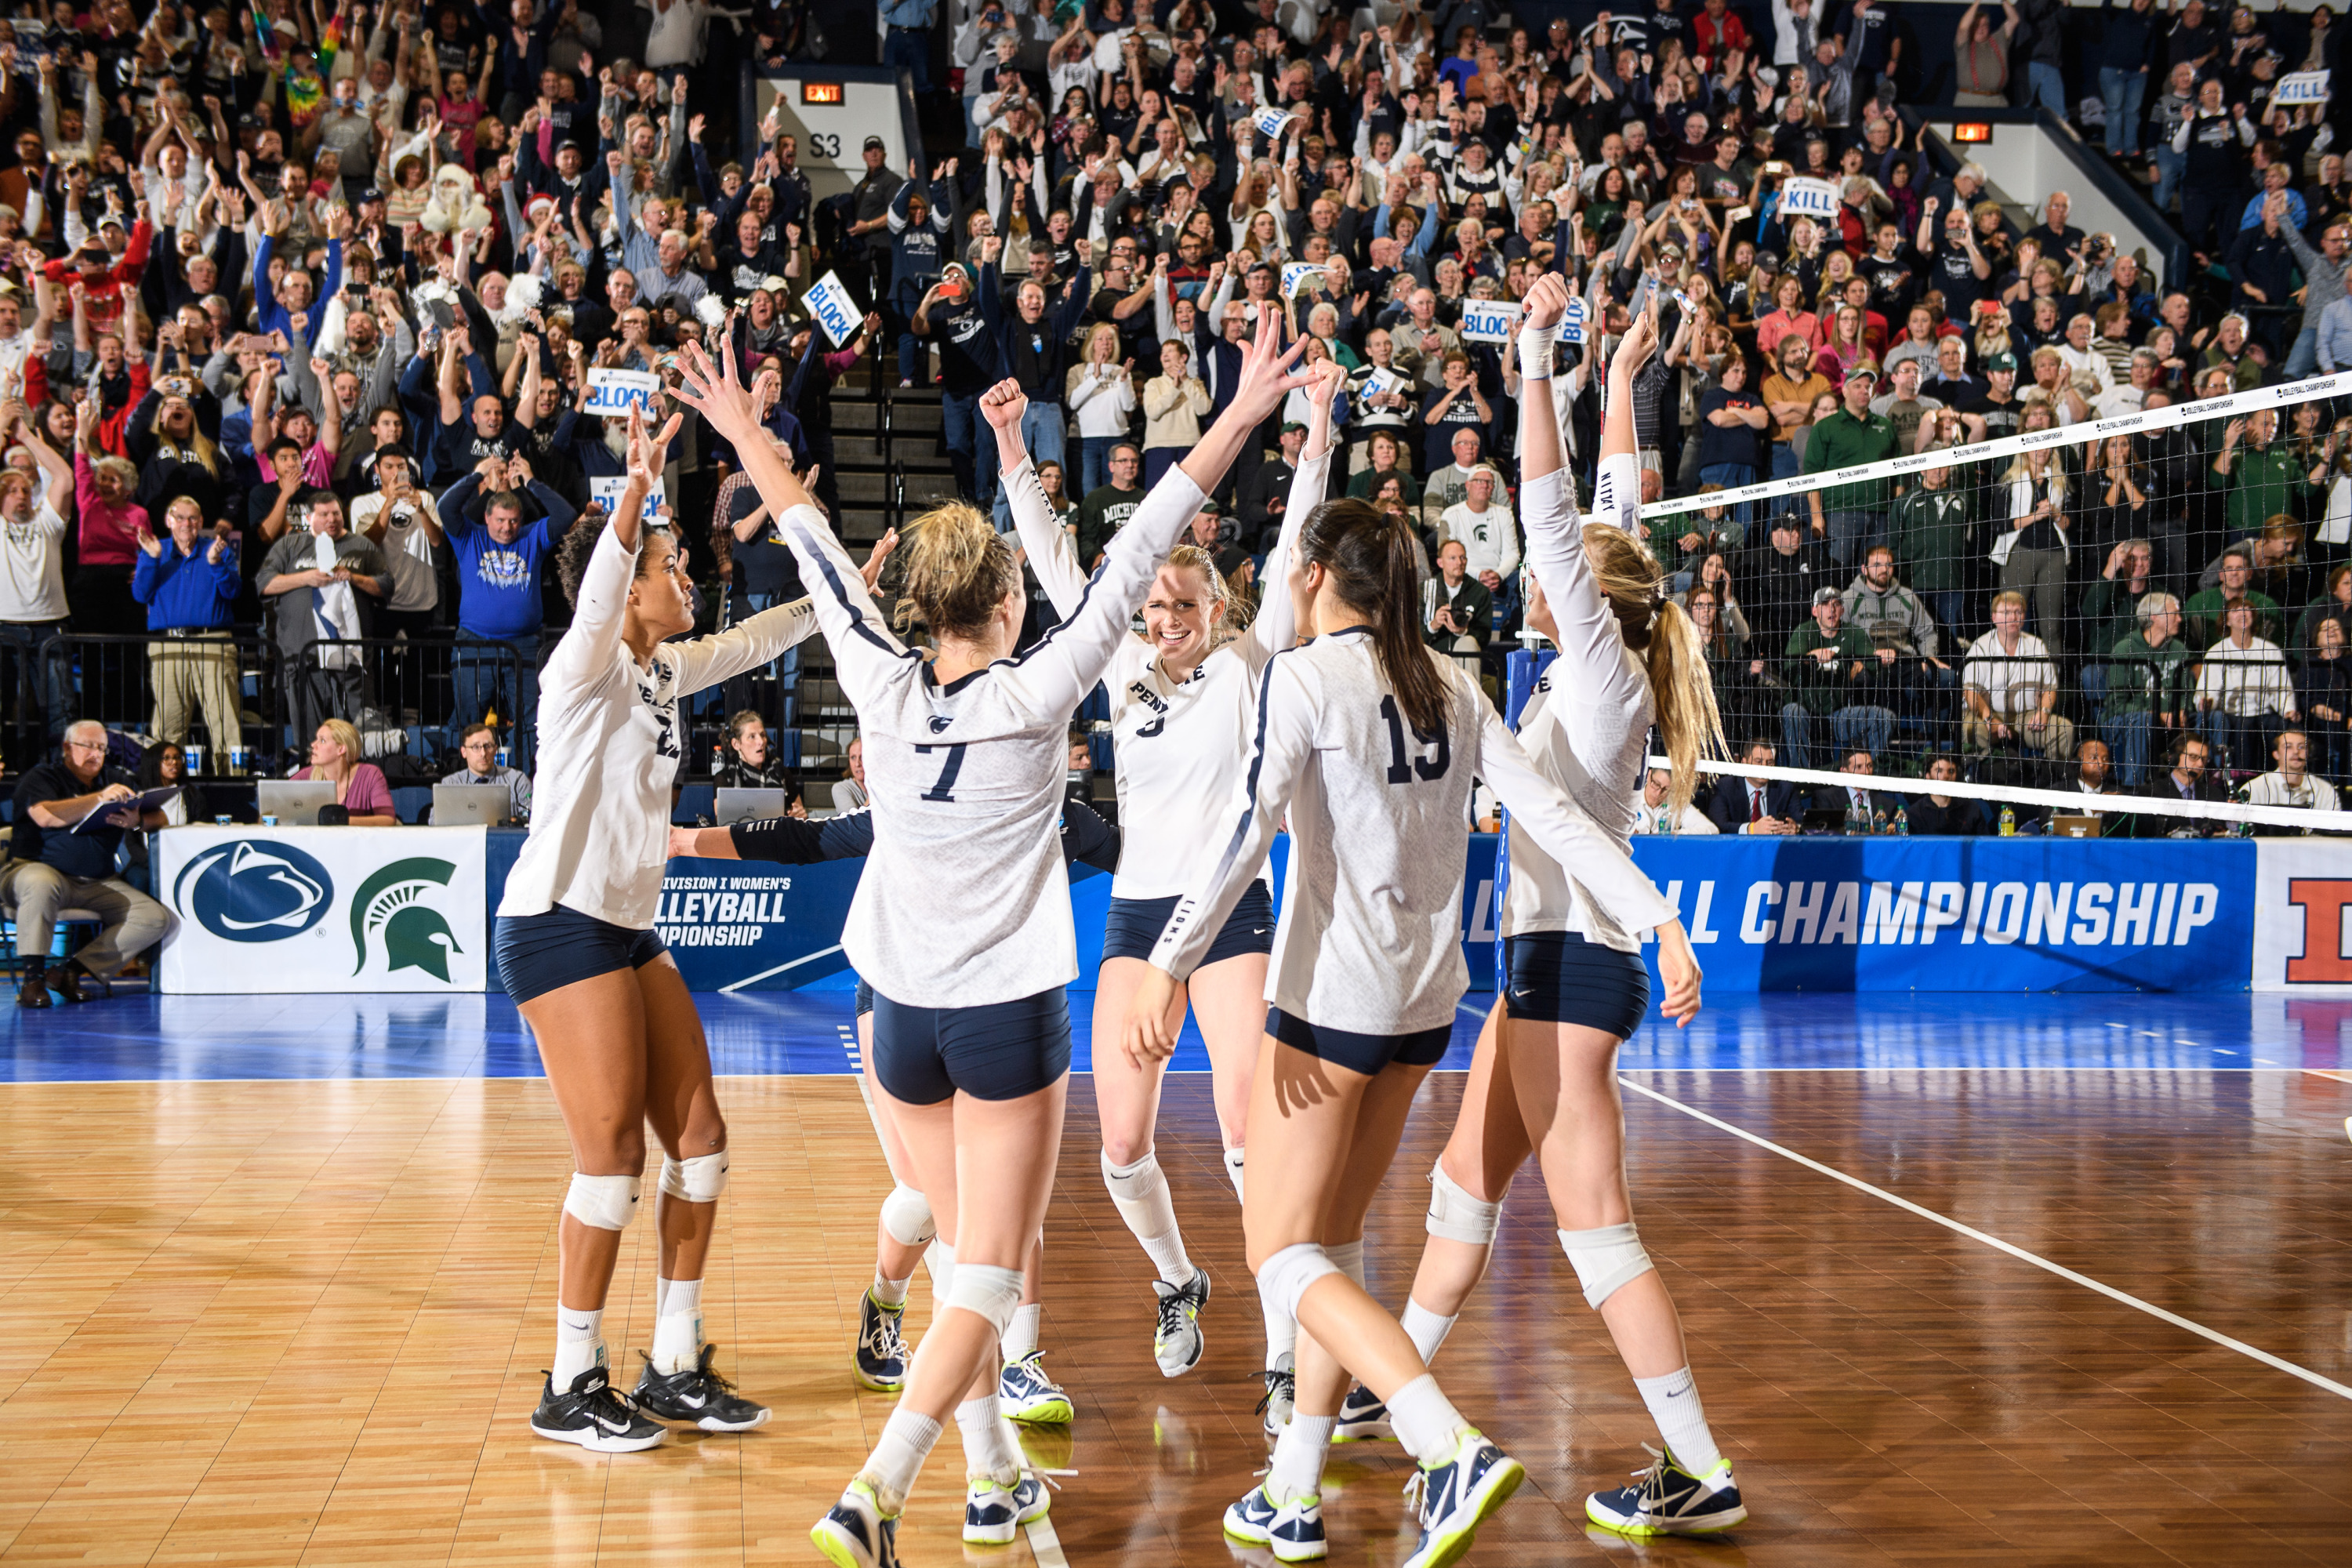 wvb 2018 season tickets now on sale - penn state university athletics